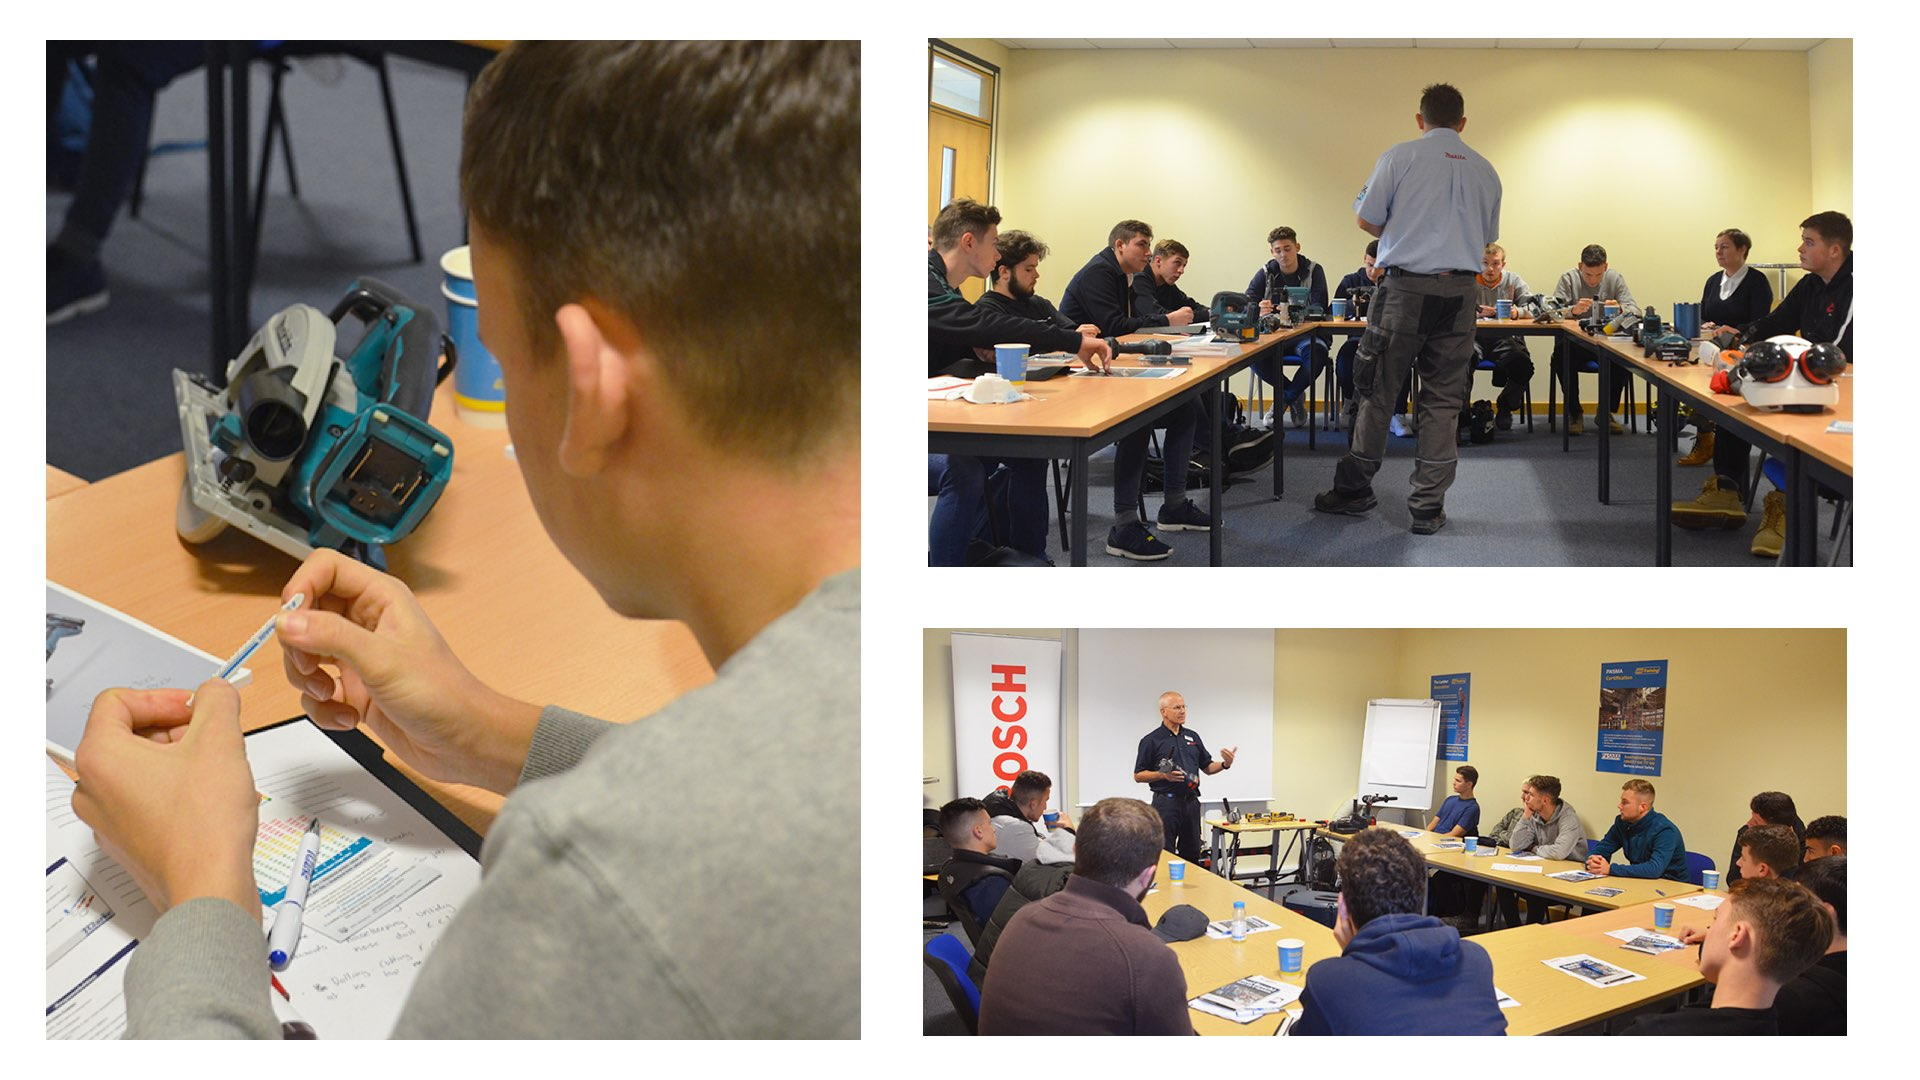 The best power tool training for our apprentices